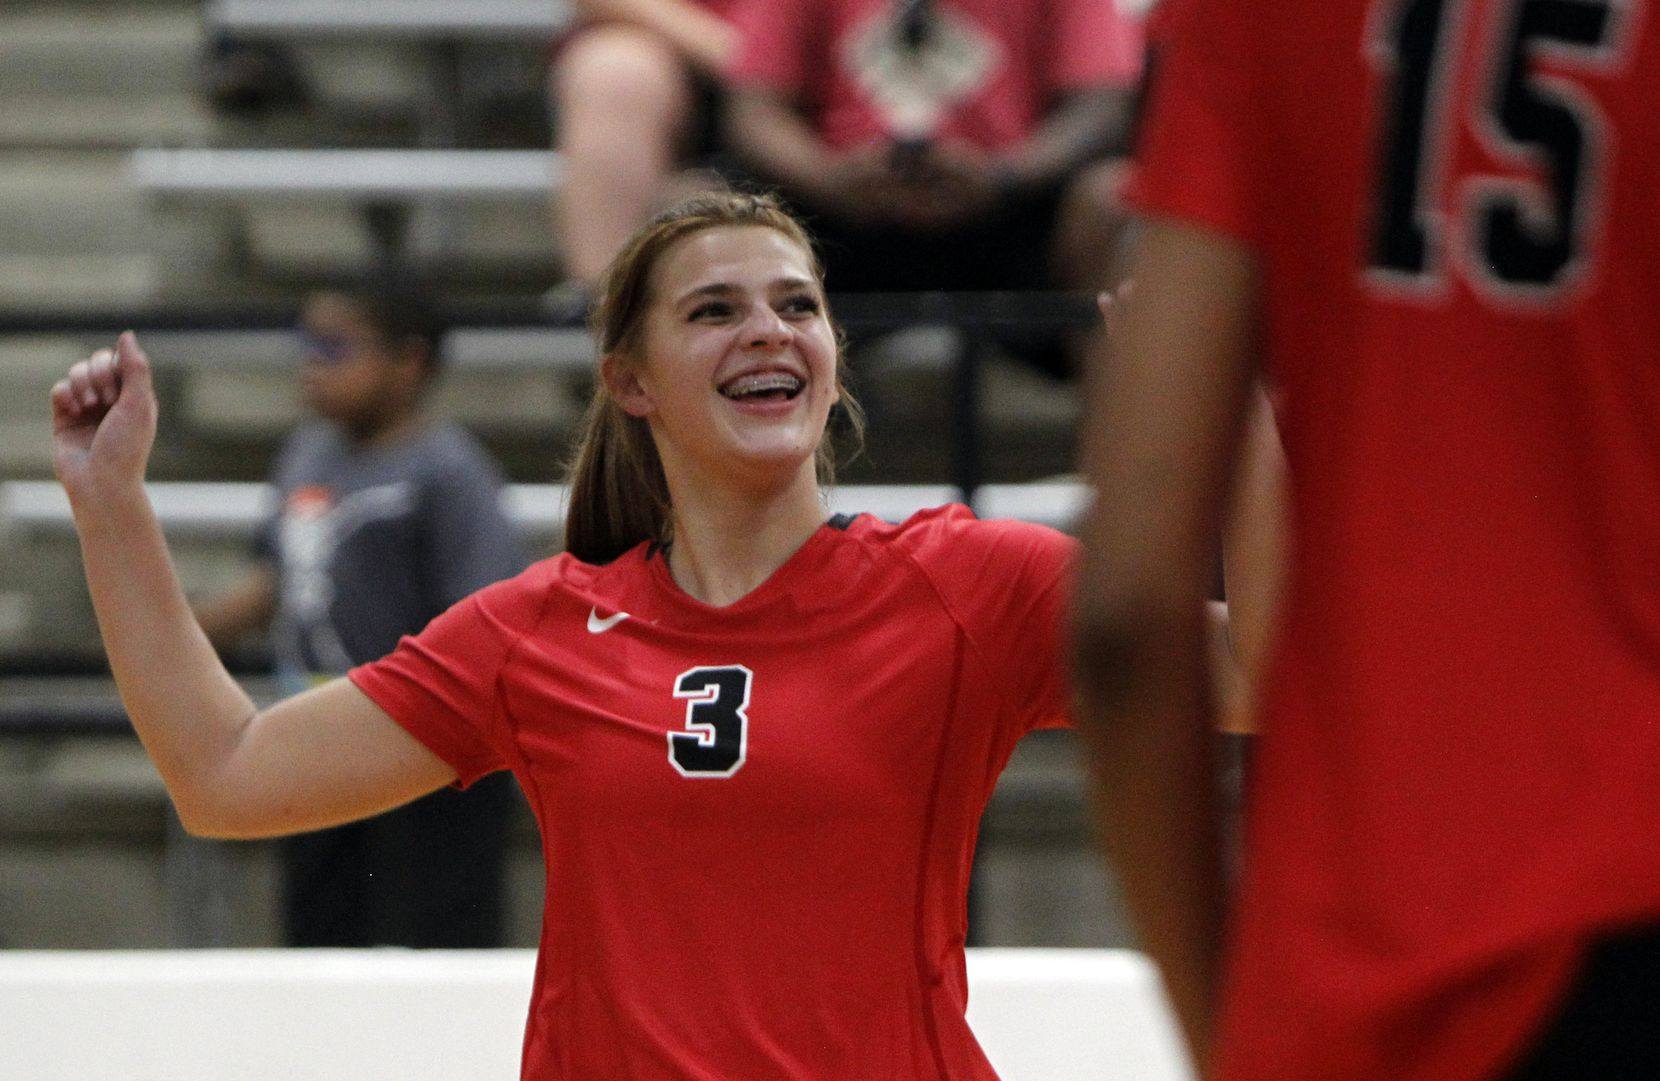 Arlington Martin's Zella Baresh (3) reacts after scoring during the 3rd set of their straight set victory over South Grand Prairie. The two teams played their volleyball match at Arlington Martin High School in Arlington on September 14, 2021. (Steve Hamm/ Special Contributor)